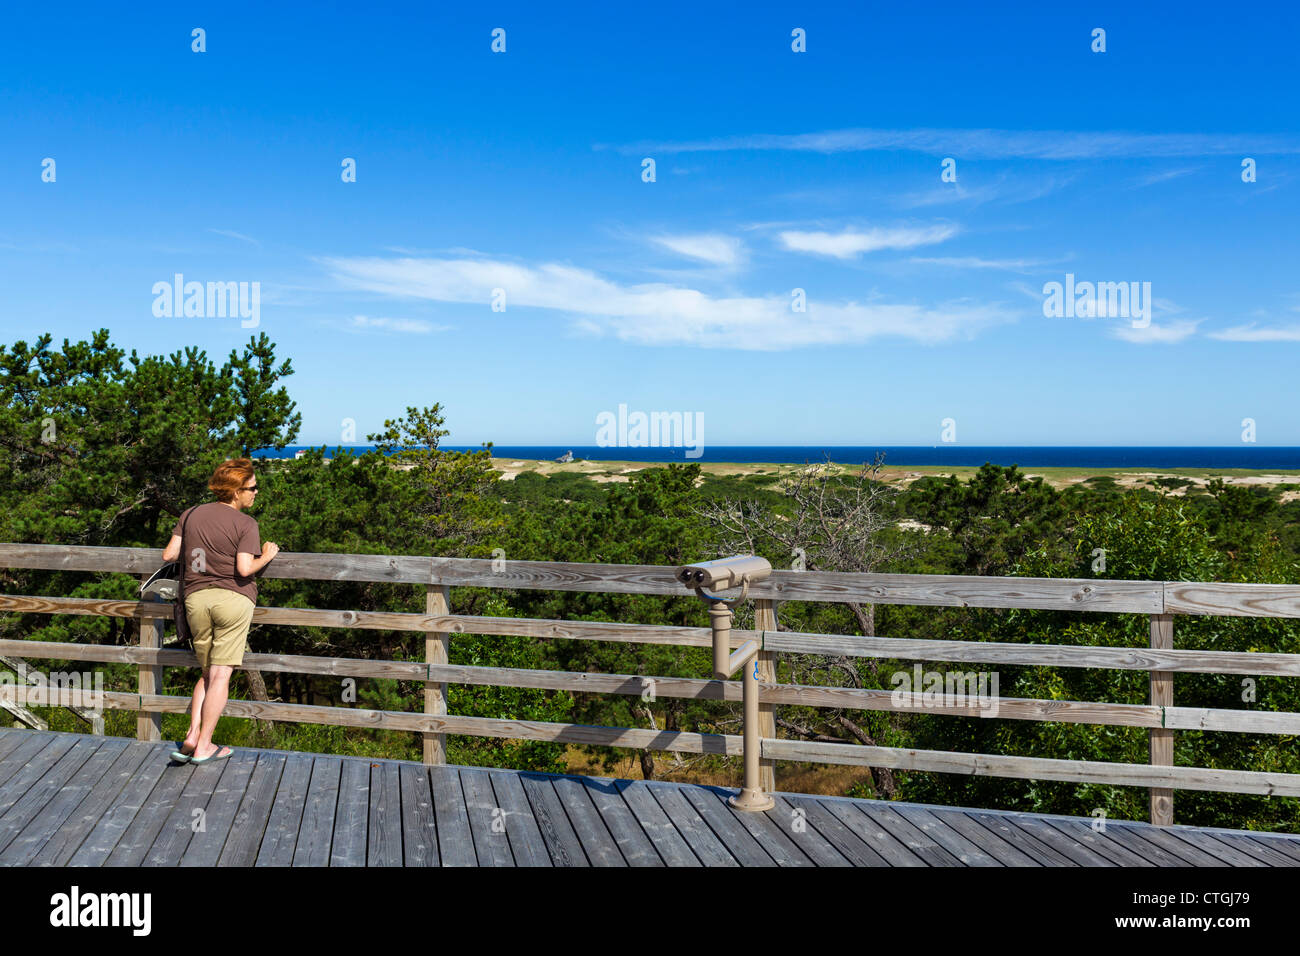 View from the terrace of the Province Lands Visitor Center, Cape Cod National Seashore, Cape Cod, Massachusetts, - Stock Image